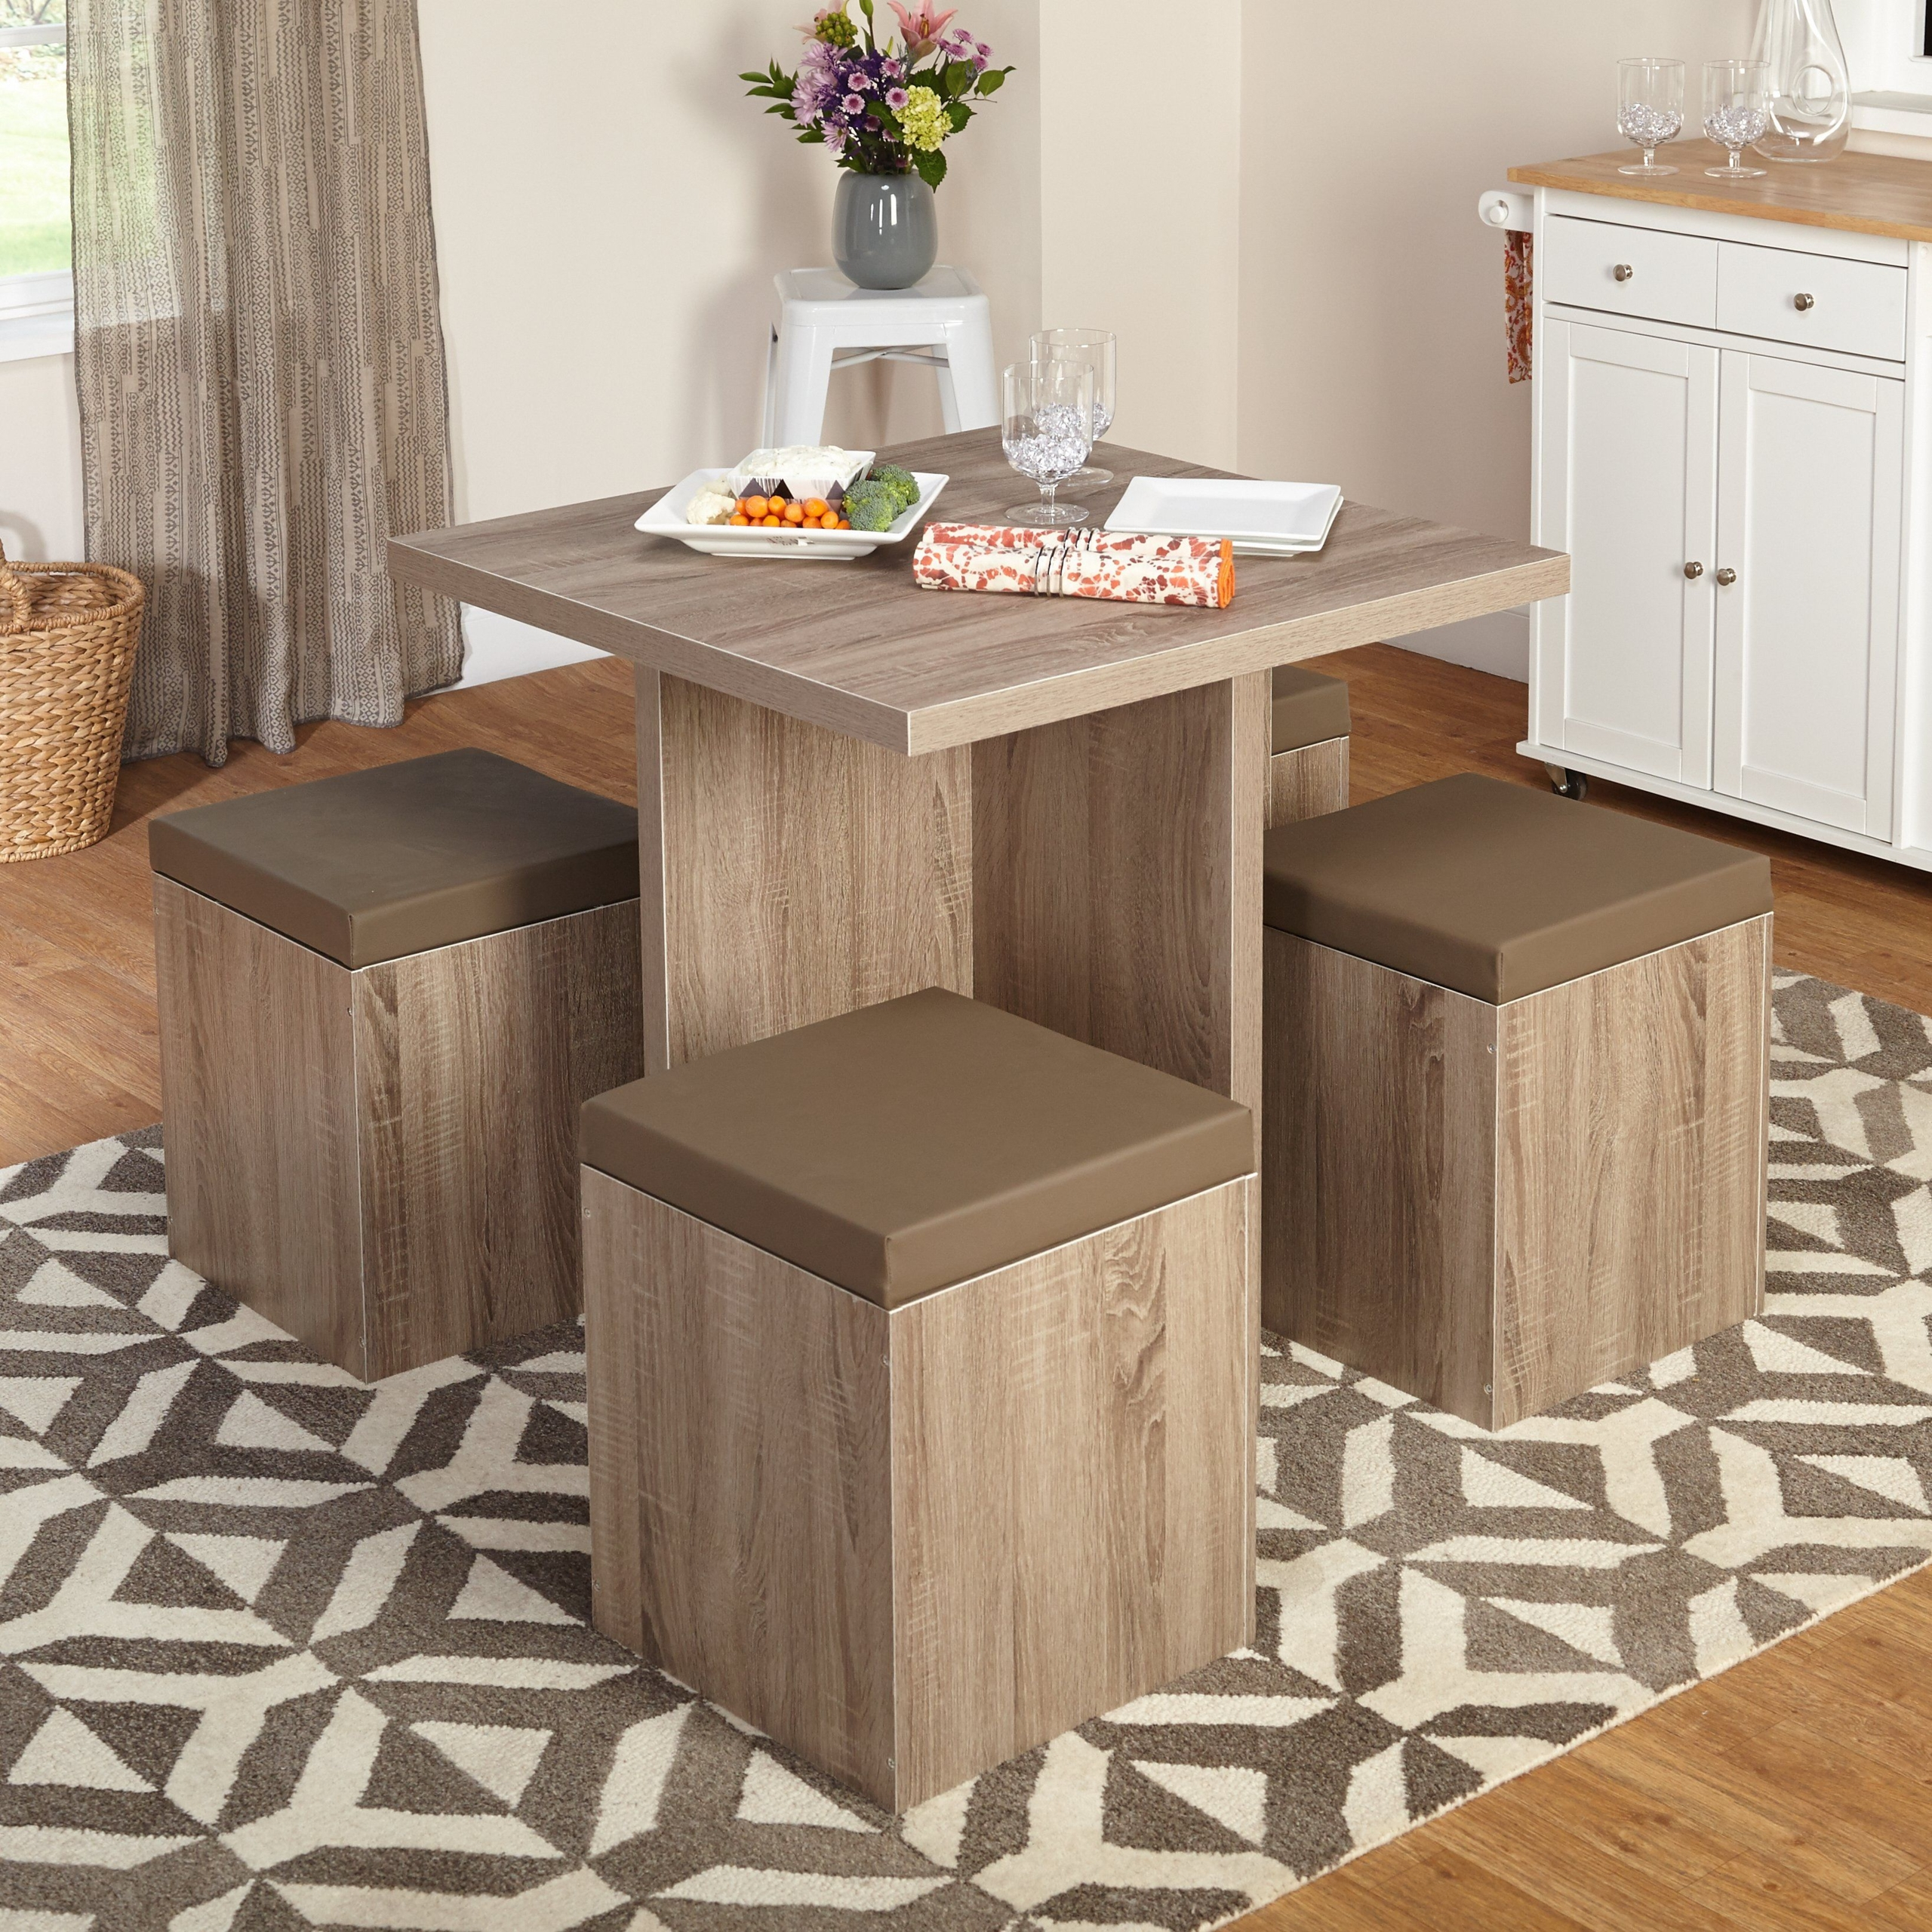 Ordinaire 5 Piece Baxter Dining Set With Storage Ottoman